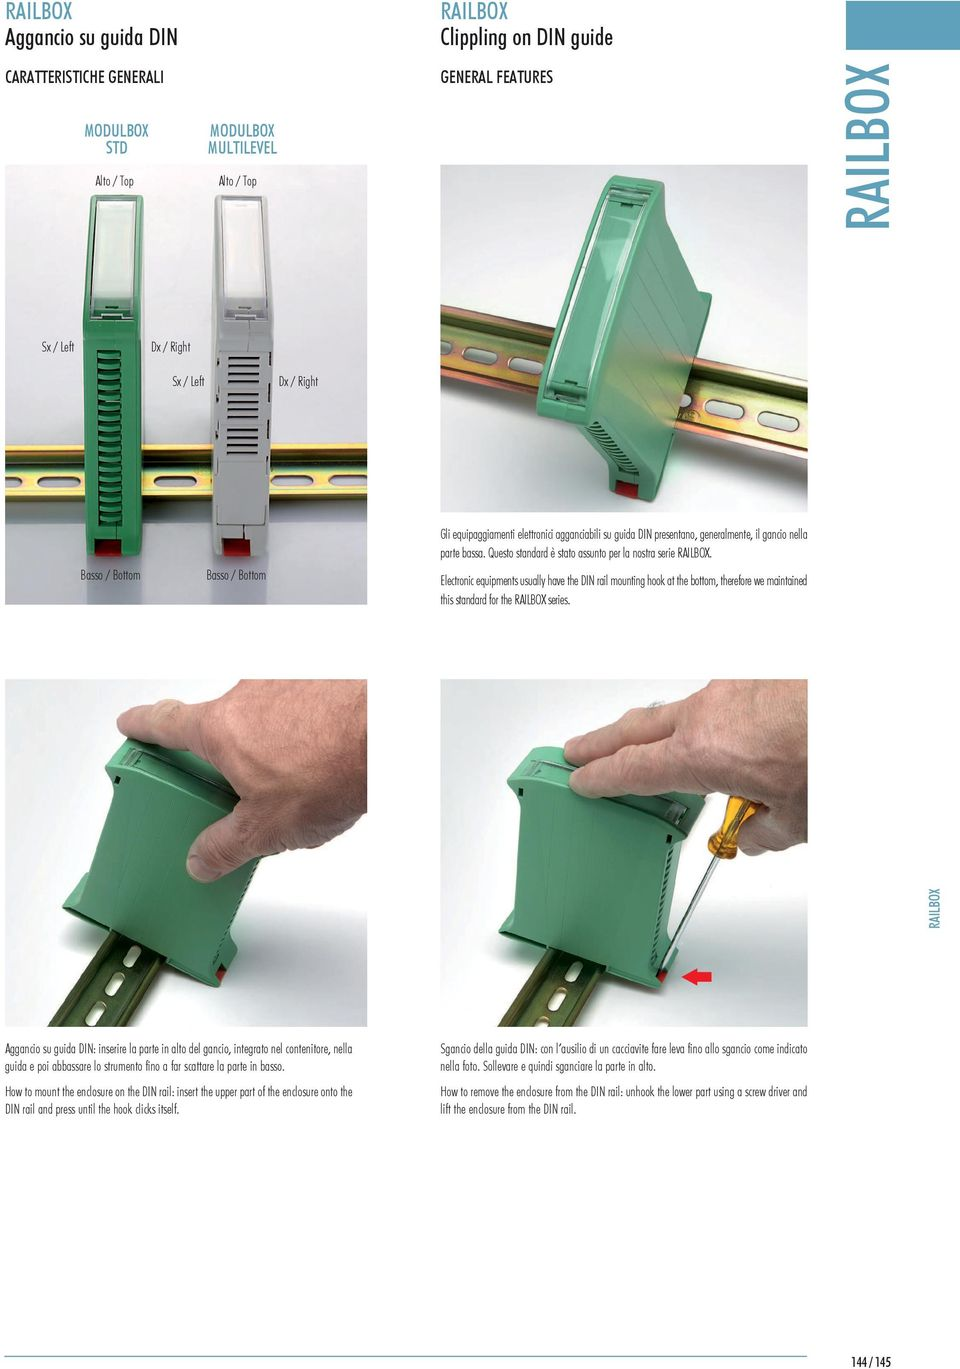 How to mount the enclosure on the DIN rail: insert the upper part of the enclosure onto the DIN rail and press until the hook clicks itself.